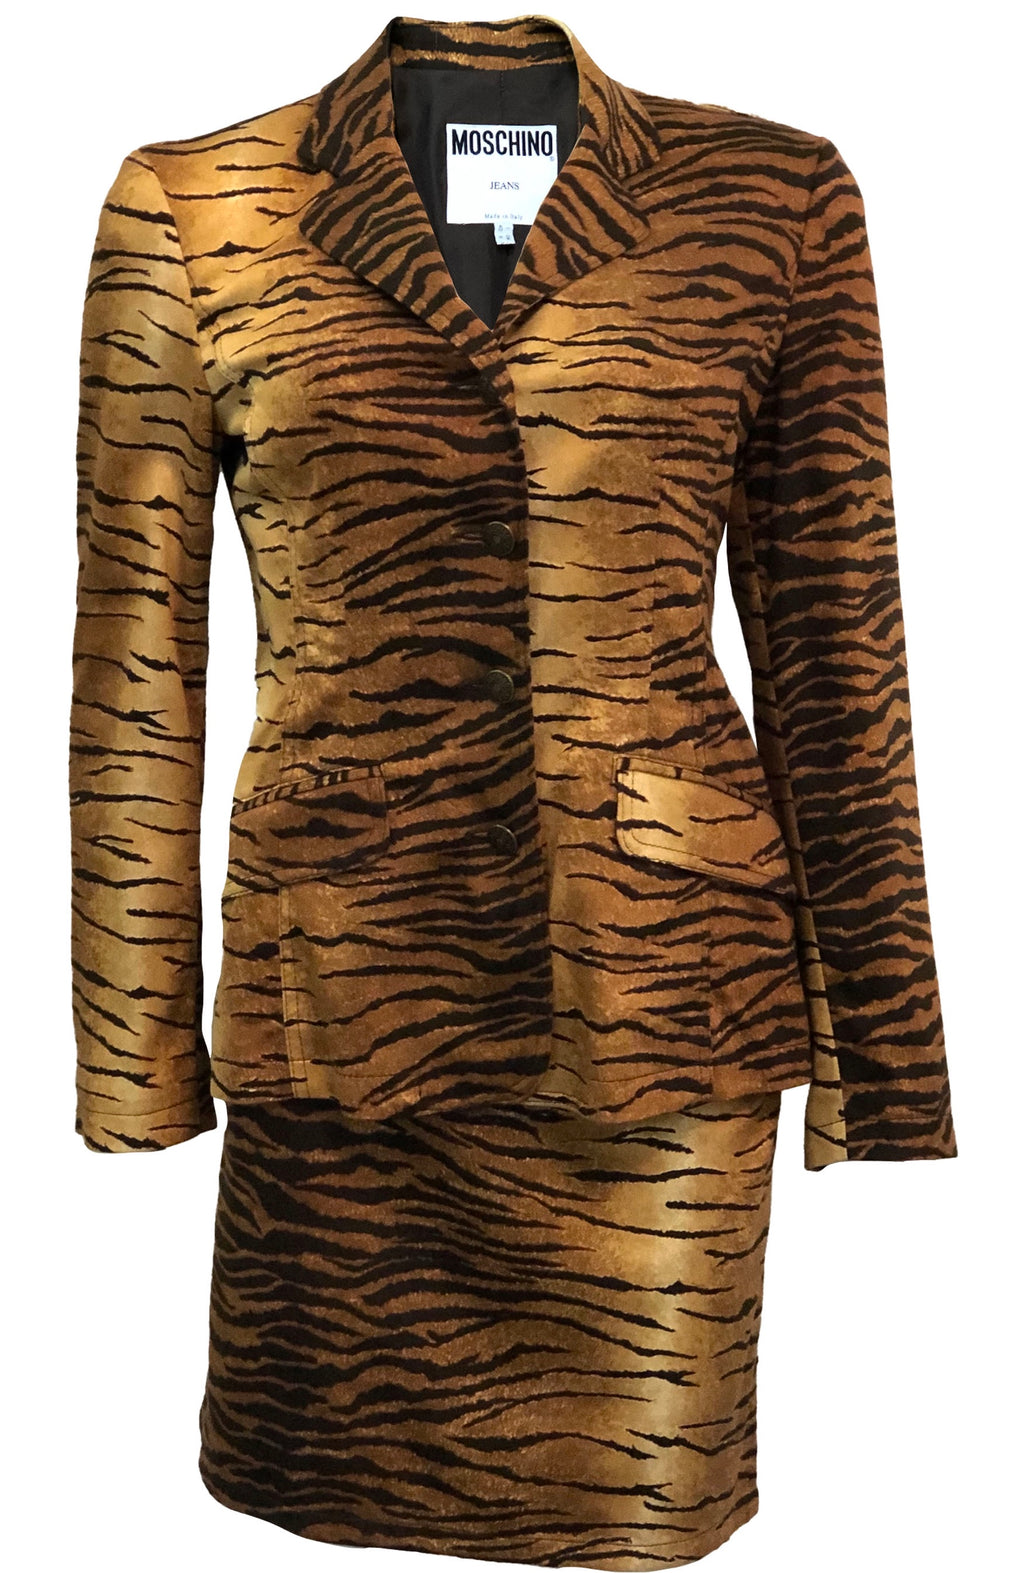 Moschino 90s Tiger Print Mini Skirt Suit FRONT 1 of 4